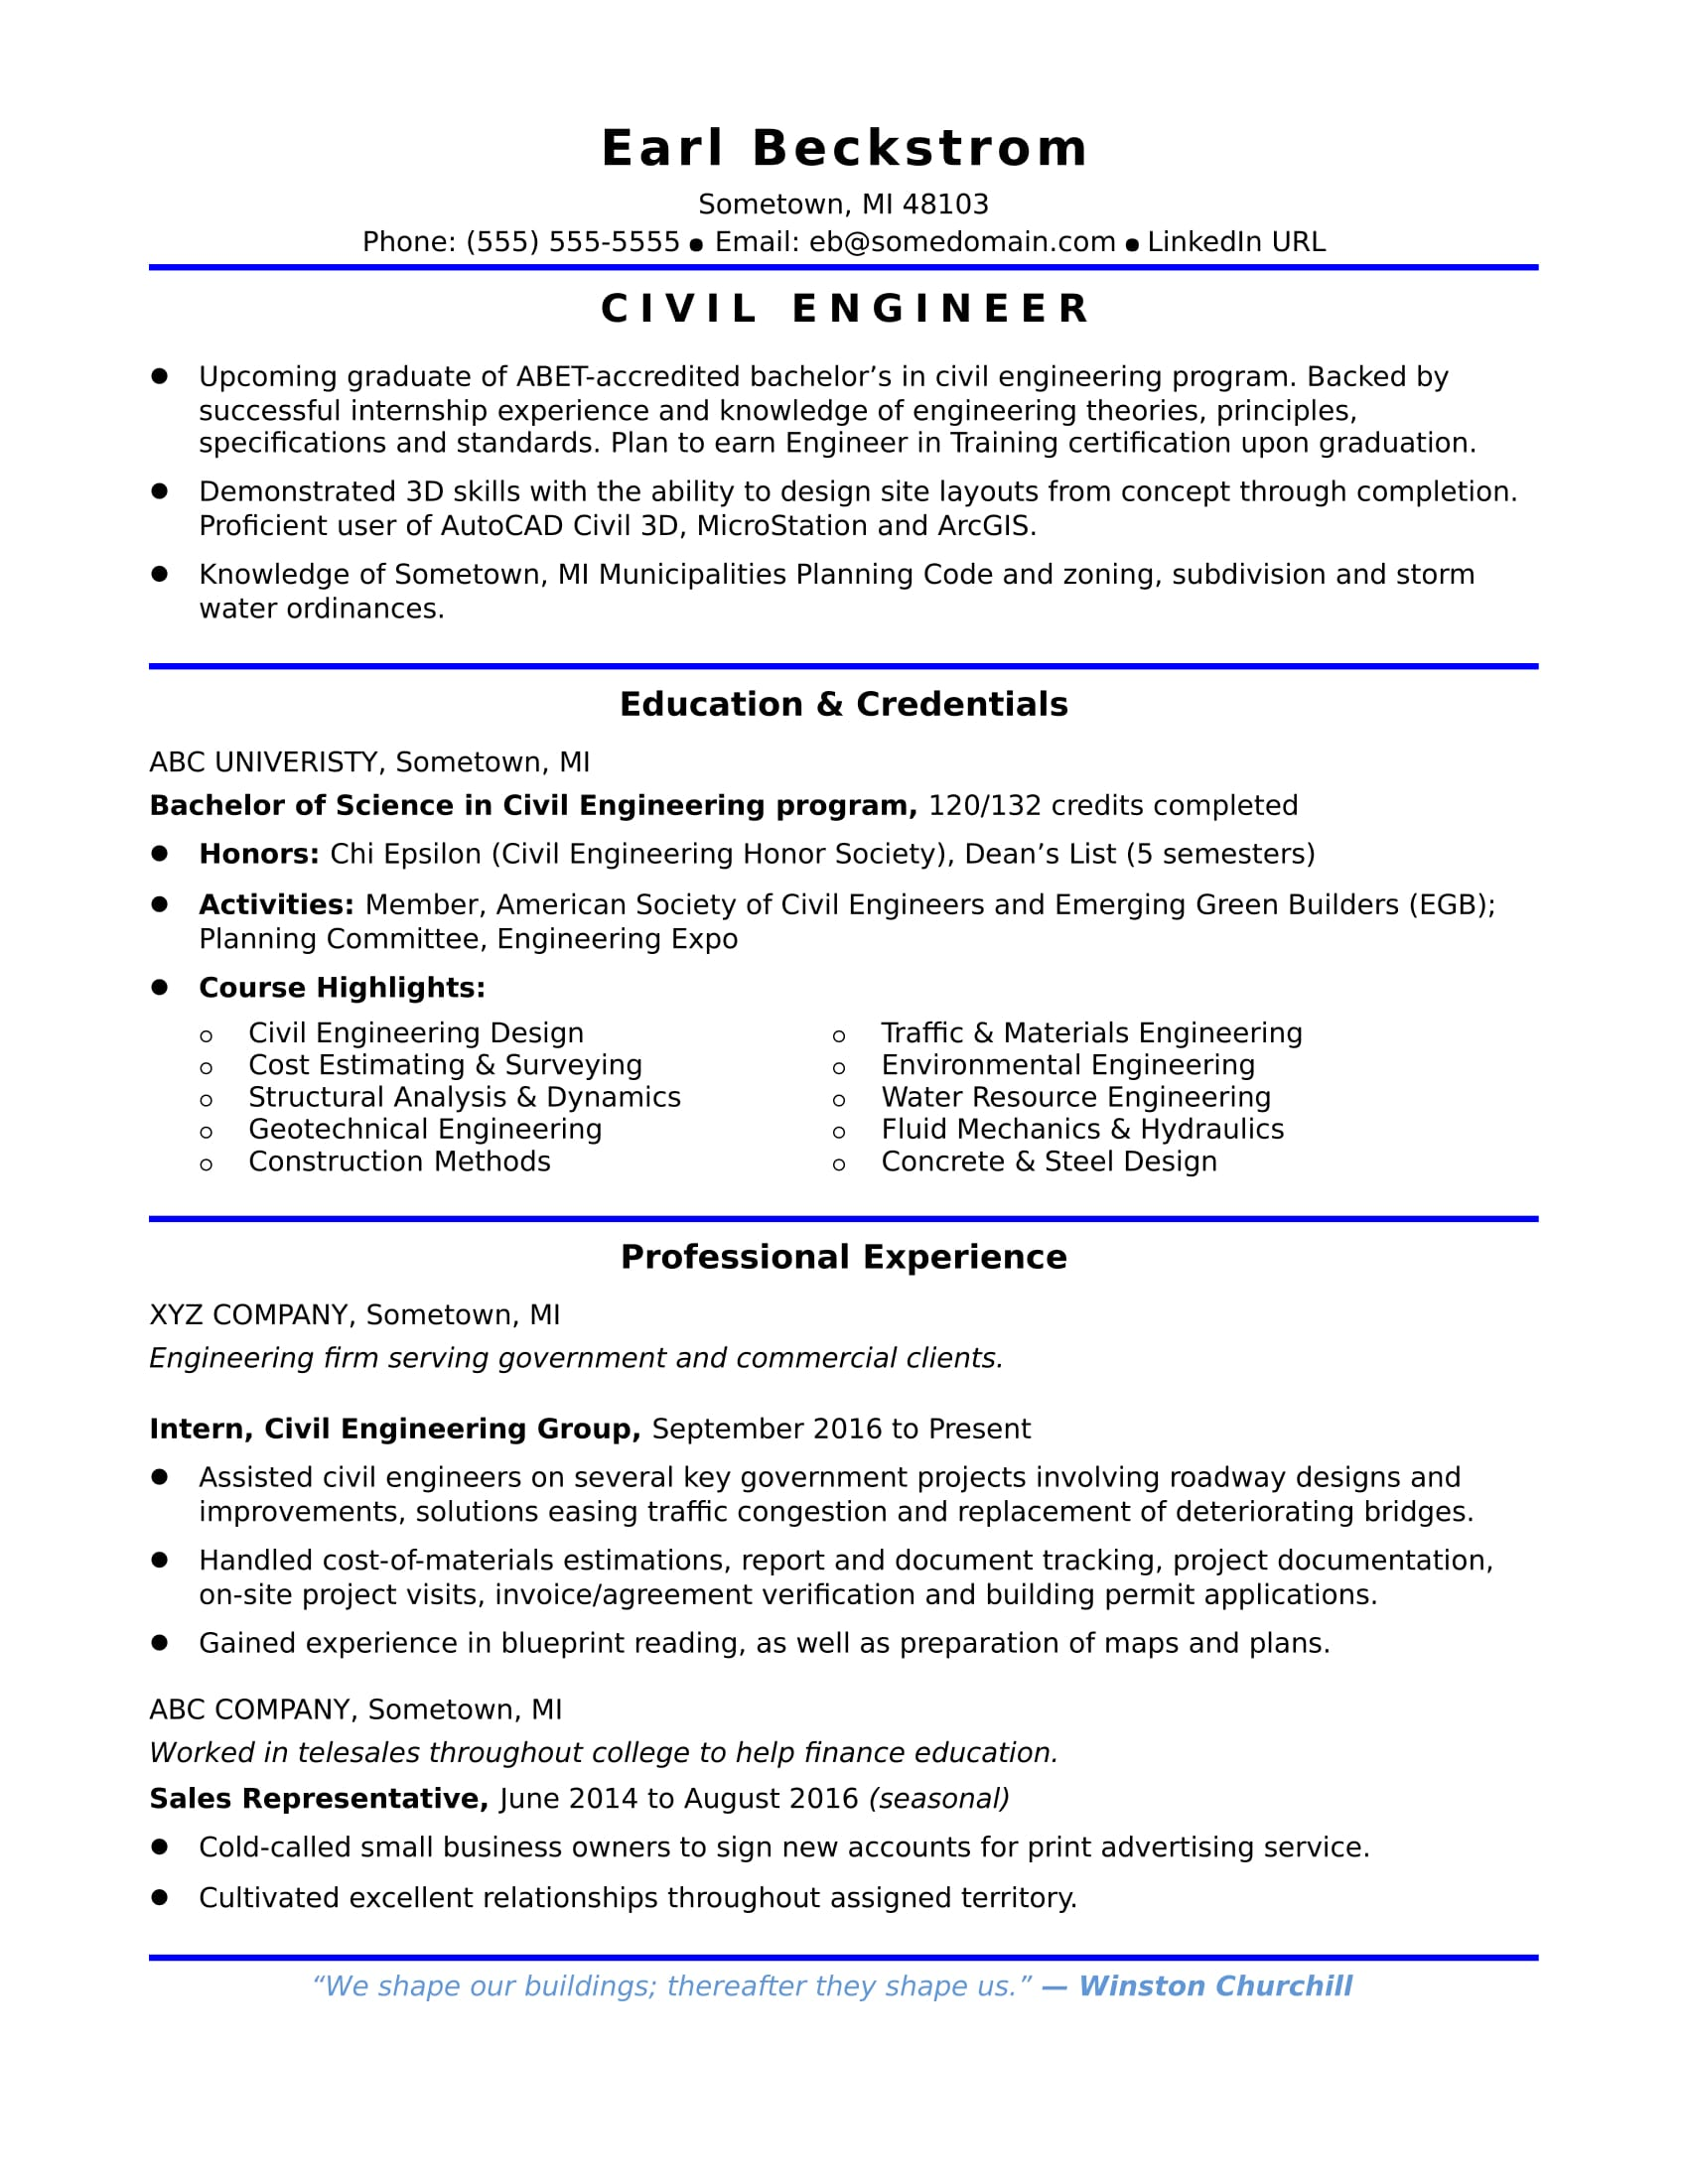 Sample Resume For An Entry Level Civil Engineer  Entry Level Resume